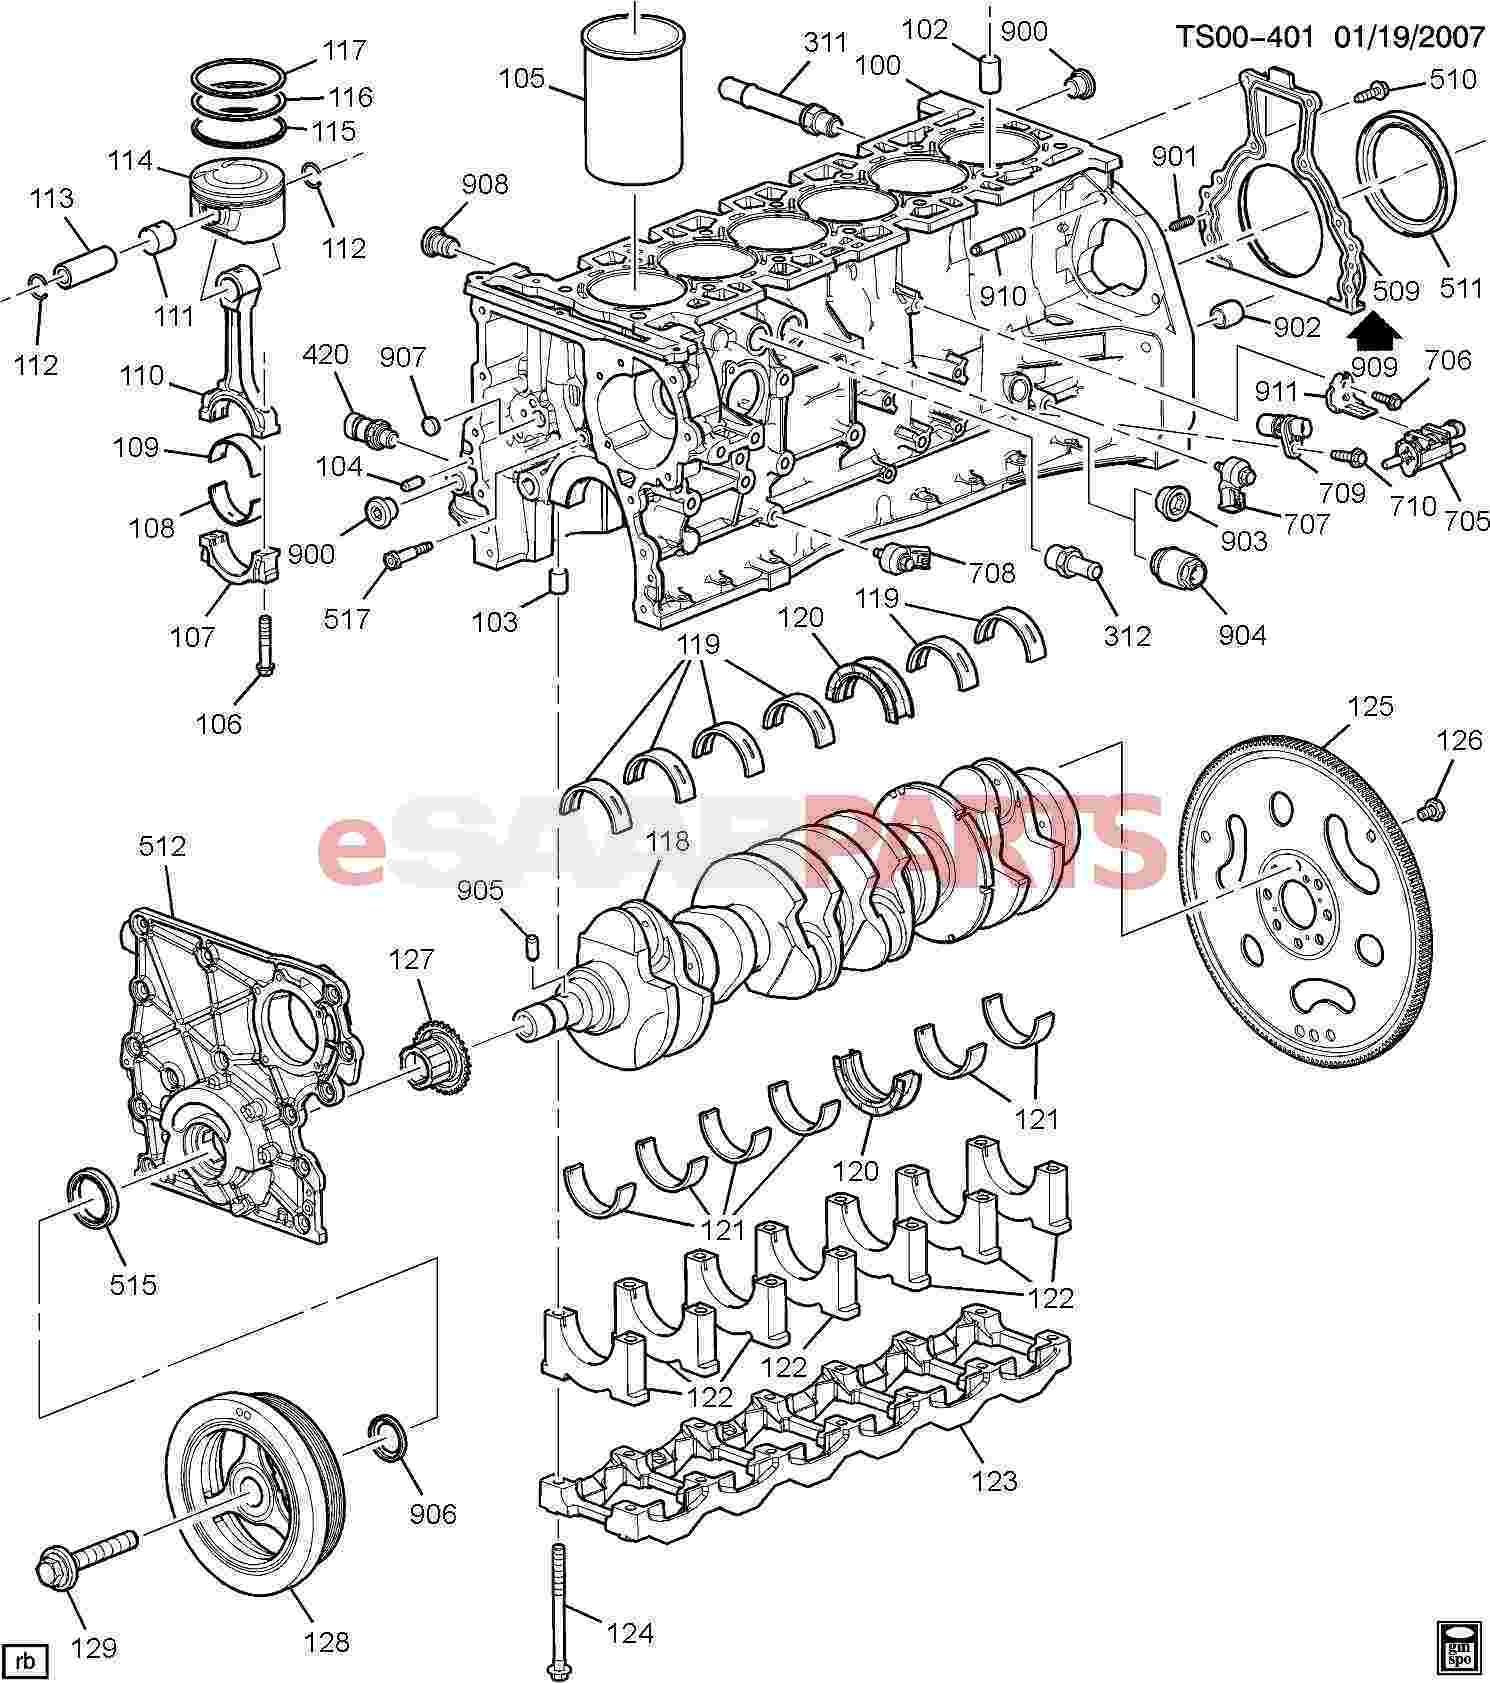 eSaabParts.com - Saab 9-7x > Engine Parts > Engine Internal 4.2S > Engine  ASM-4.2L L6 Part 1 Block And Internal Parts (4.2S)